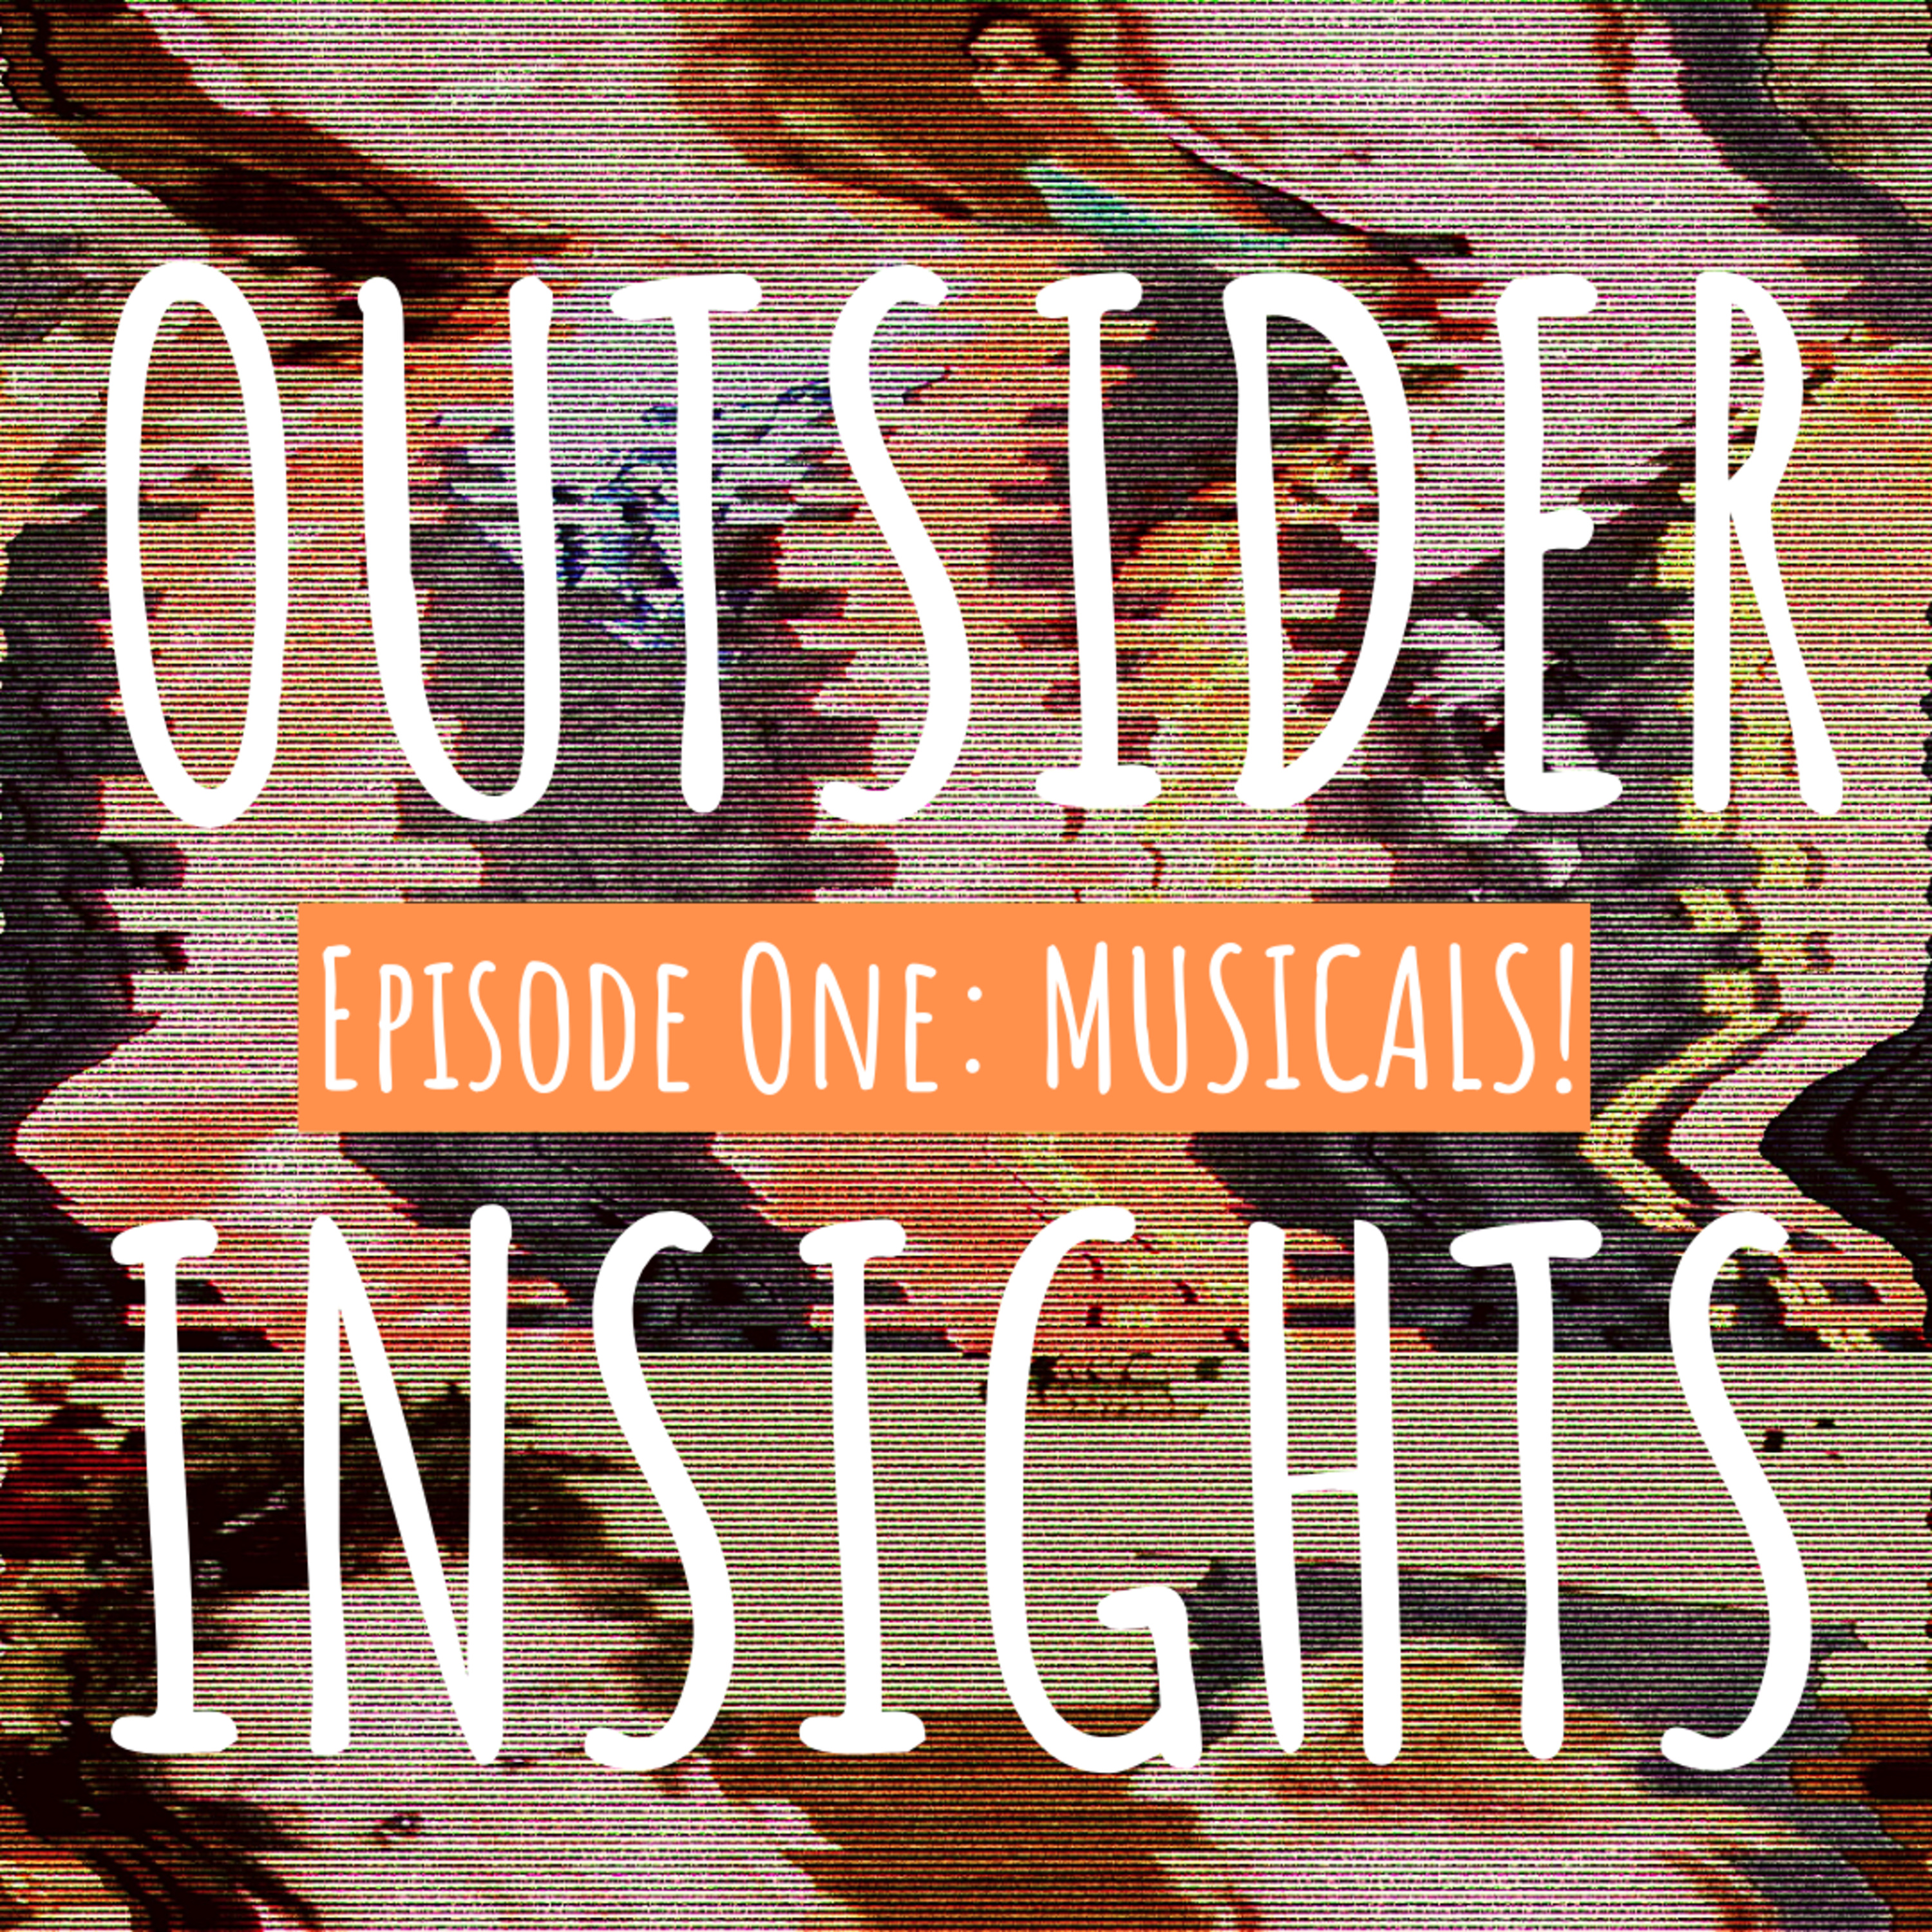 Outsider Insights, Episode #1: MUSICALS!